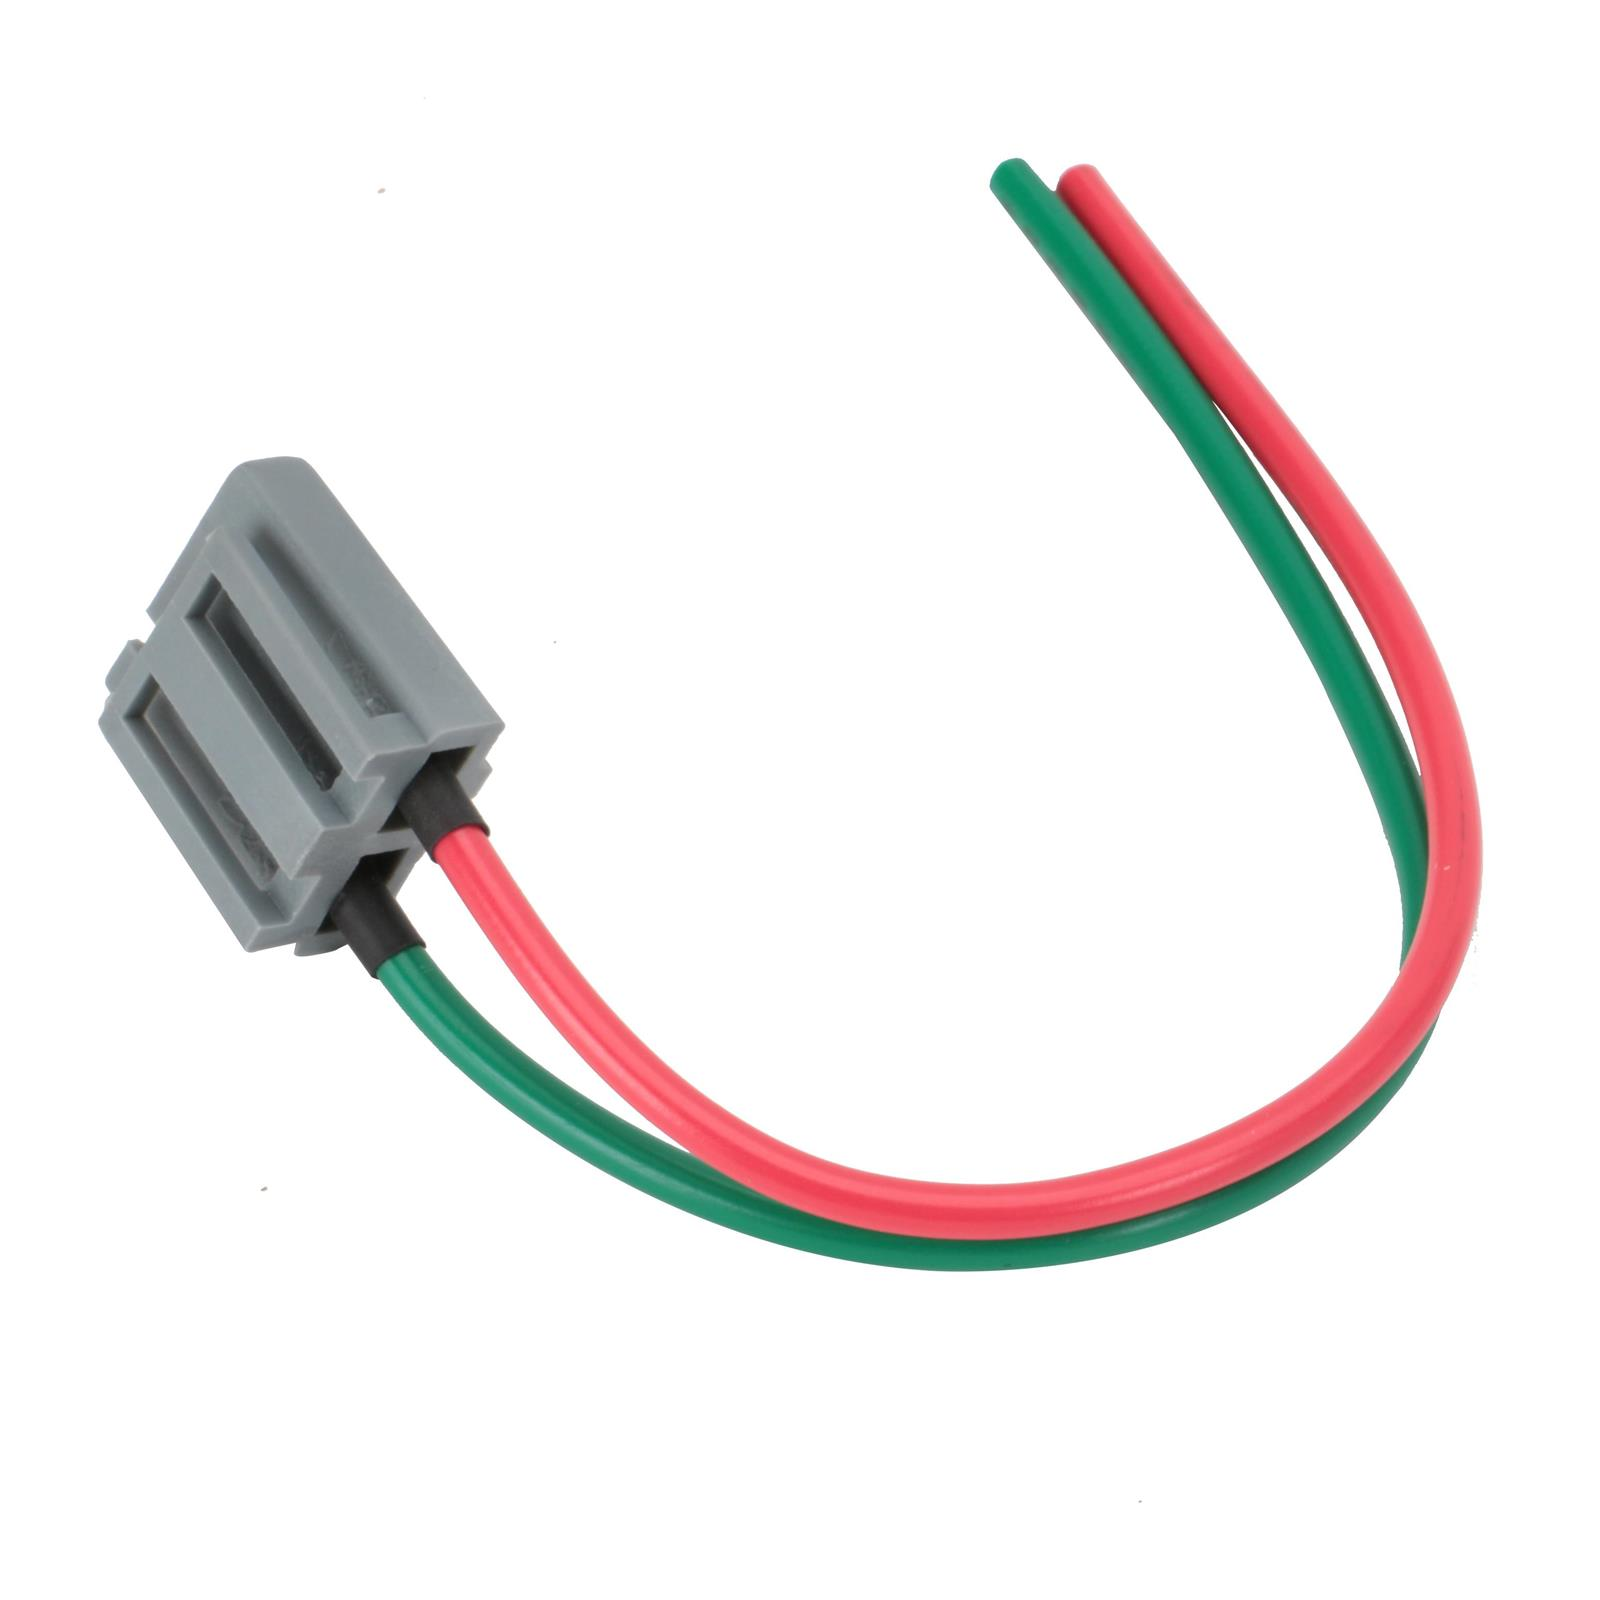 Hei Distributor Wiring Pigtail 8 Inches Gm Pig Tail